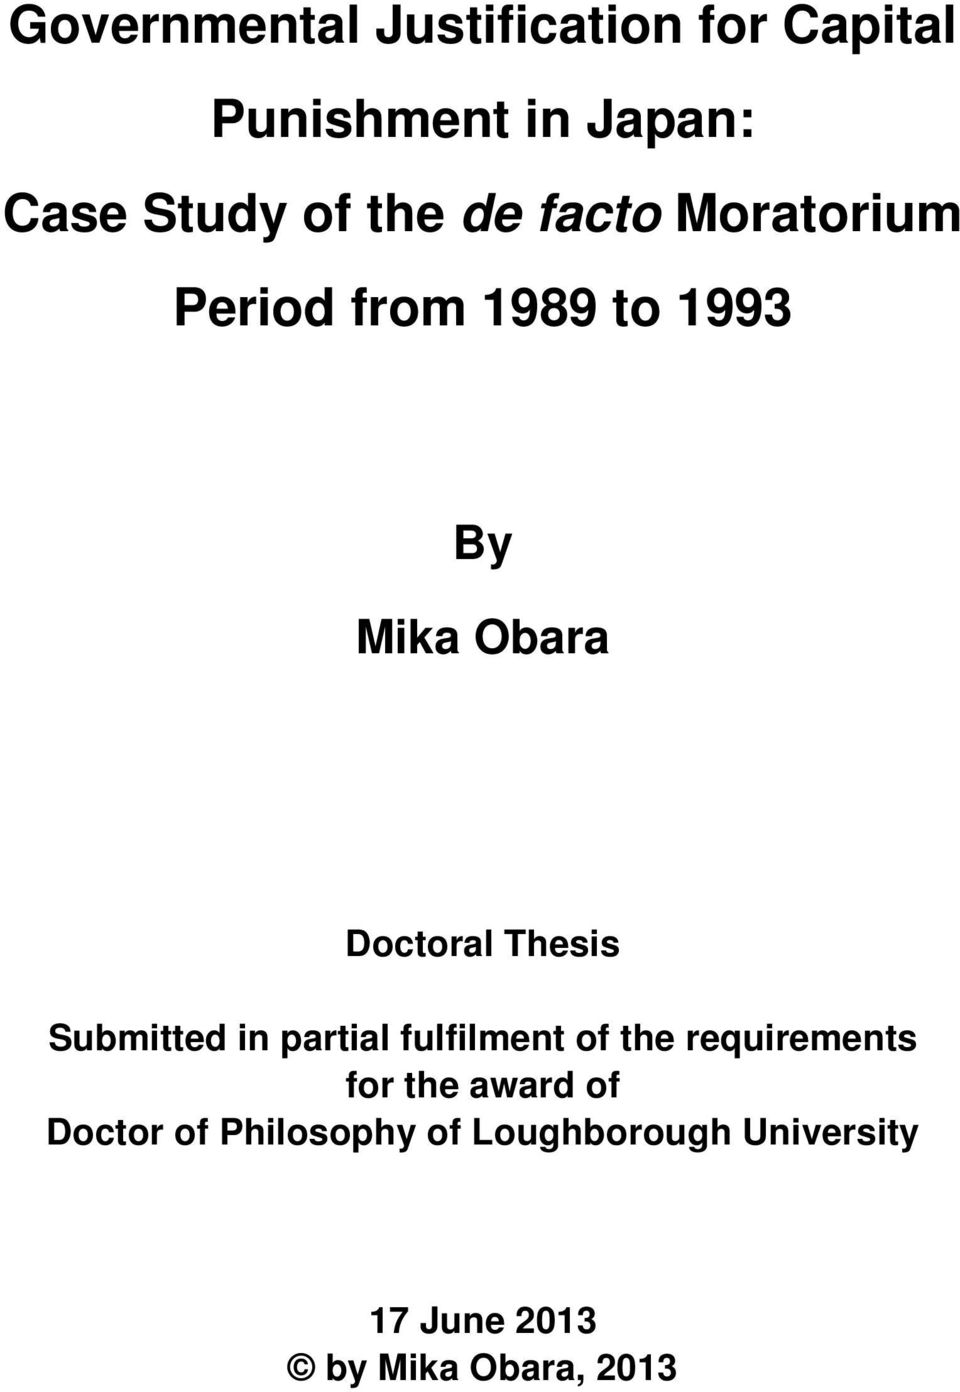 Thesis Submitted in partial fulfilment of the requirements for the award of